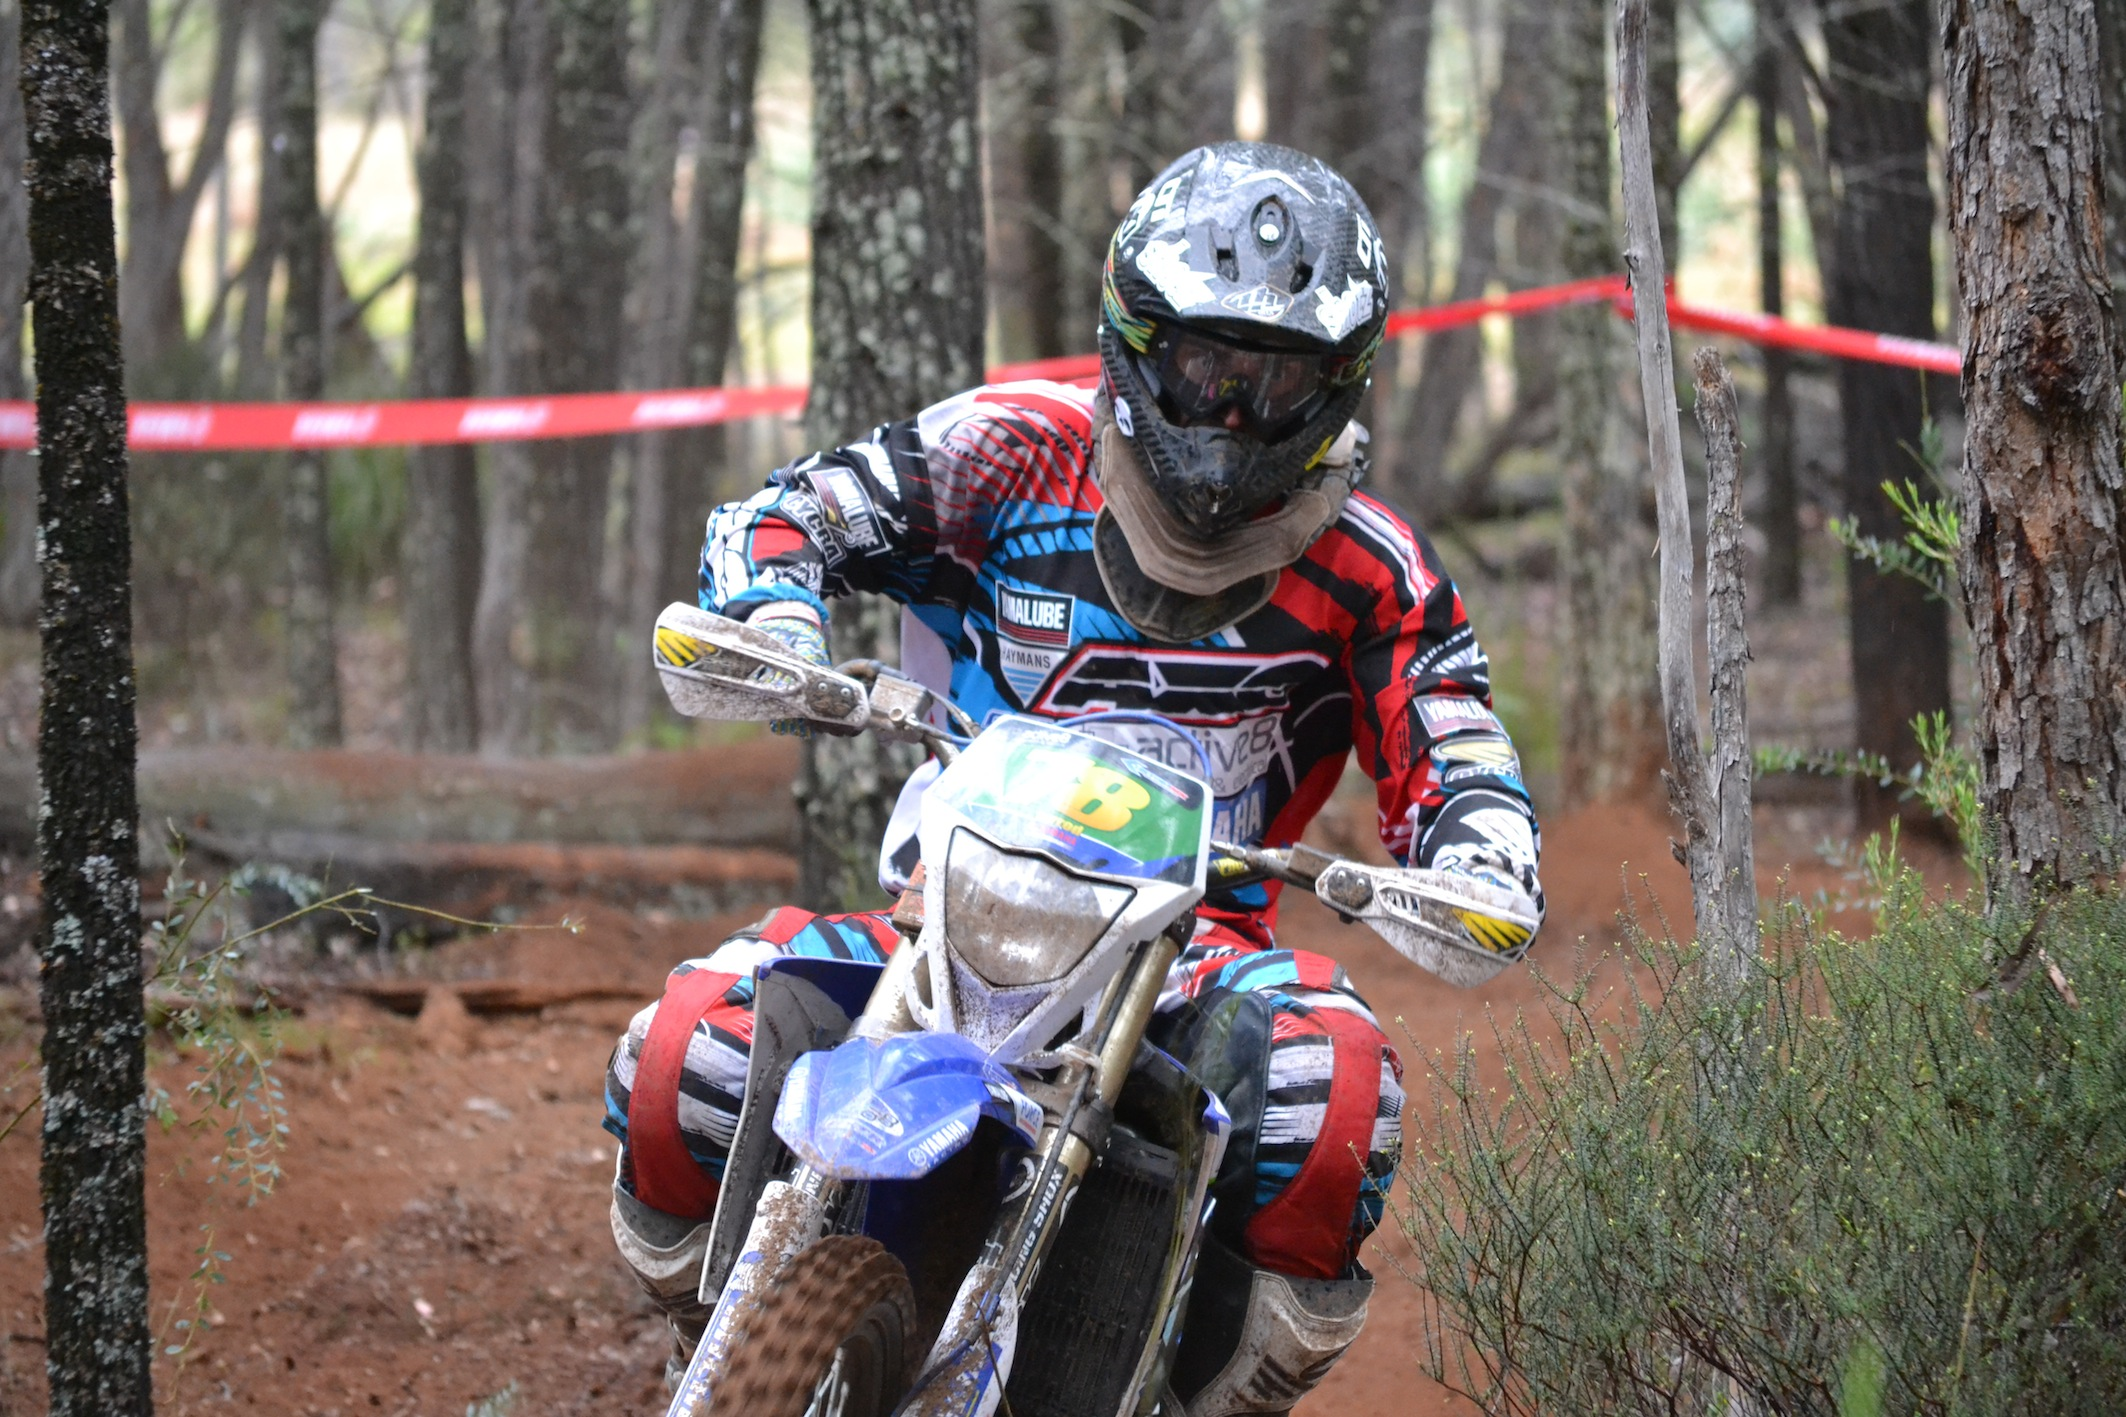 PR: Green and Bewley on Fire at Yamaha AORC Round Five